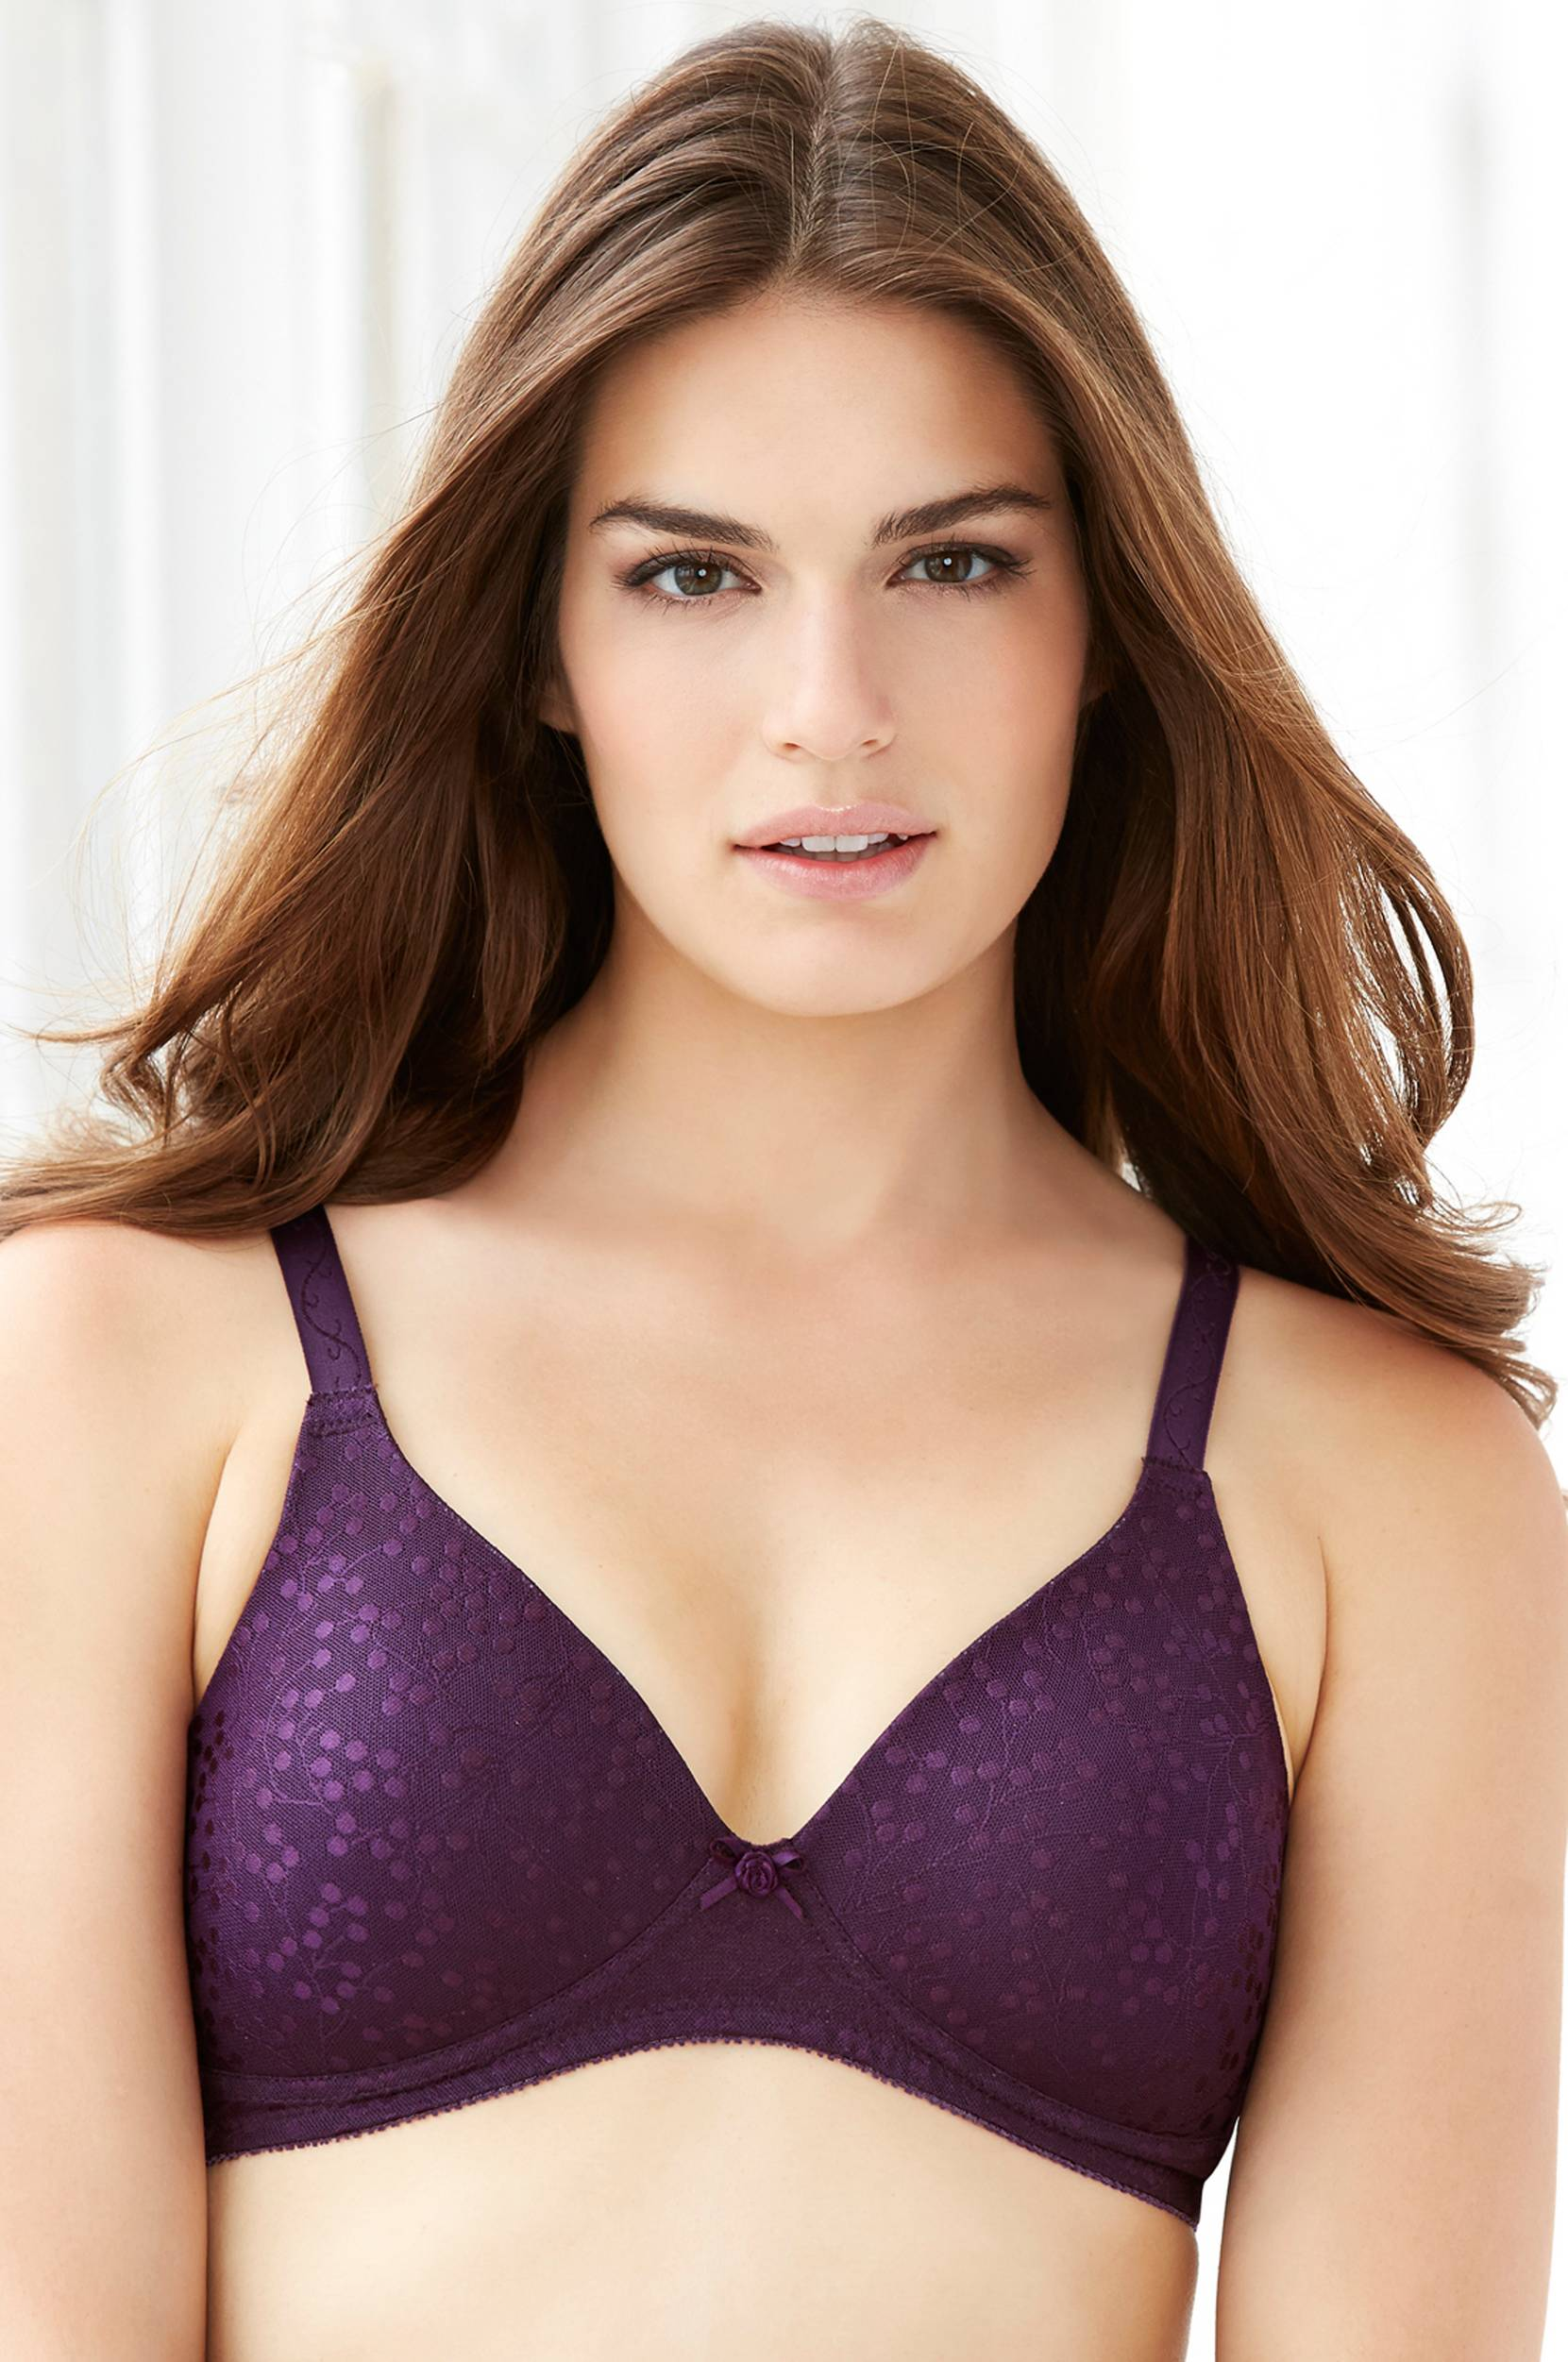 Perfect A-Cup Bra Soft Padded